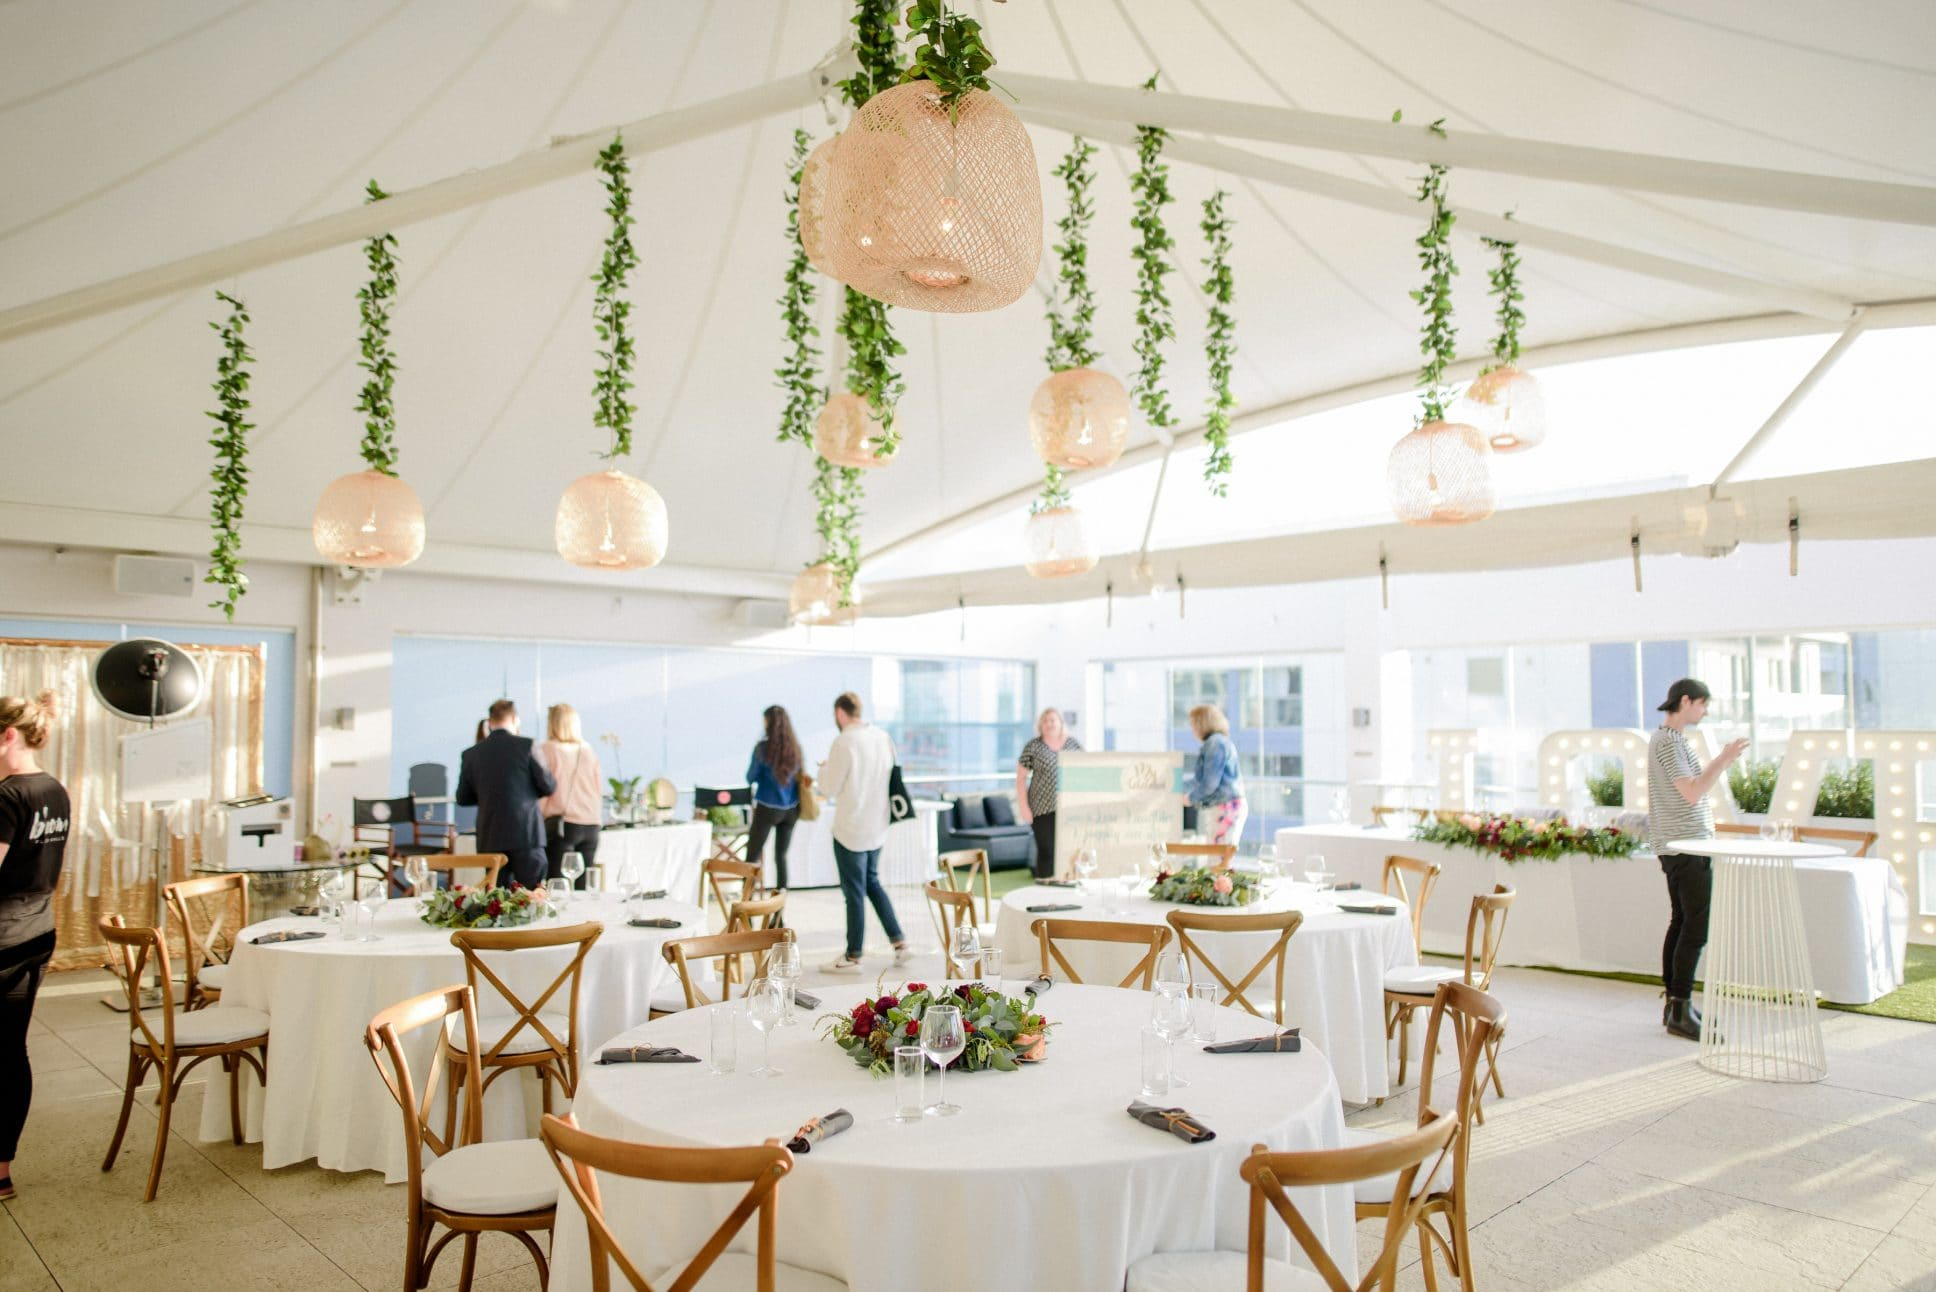 the Rooftop Terrace event set up at Rydges Auckland.